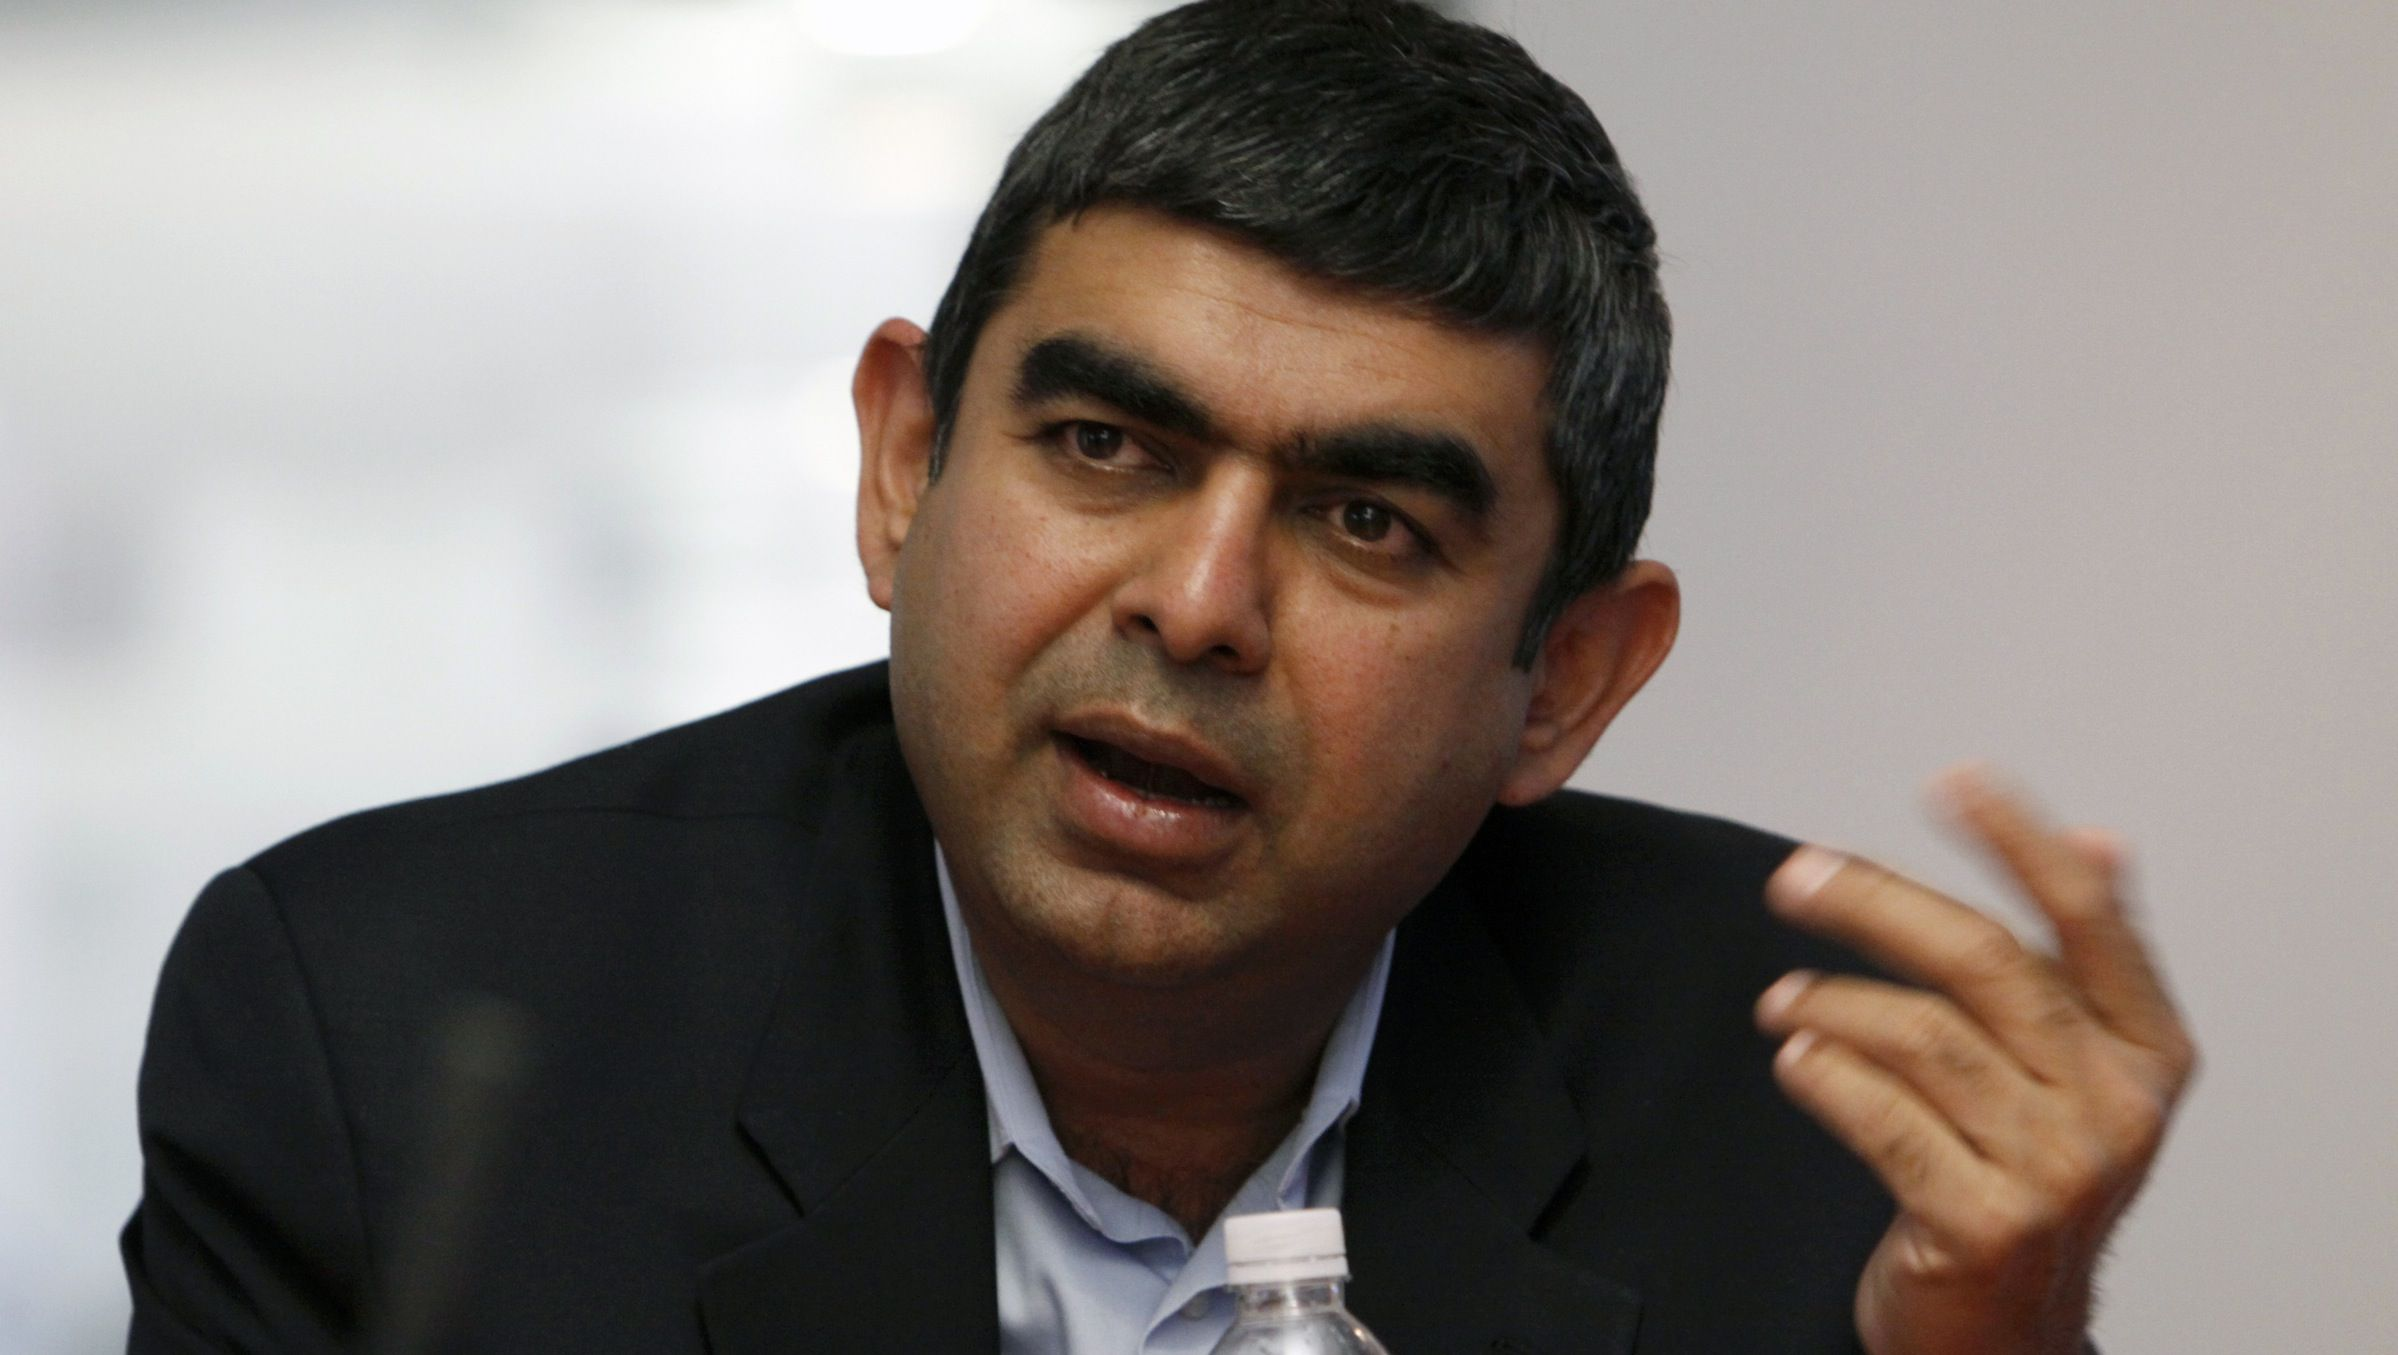 Vishal Sikka, Chief Technology Officer for SAP AG, speaks at the Reuters Global Technology Summit in New York May 21, 2009. REUTERS/Brendan McDermid (UNITED STATES BUSINESS SCI TECH) - RTXKSSI